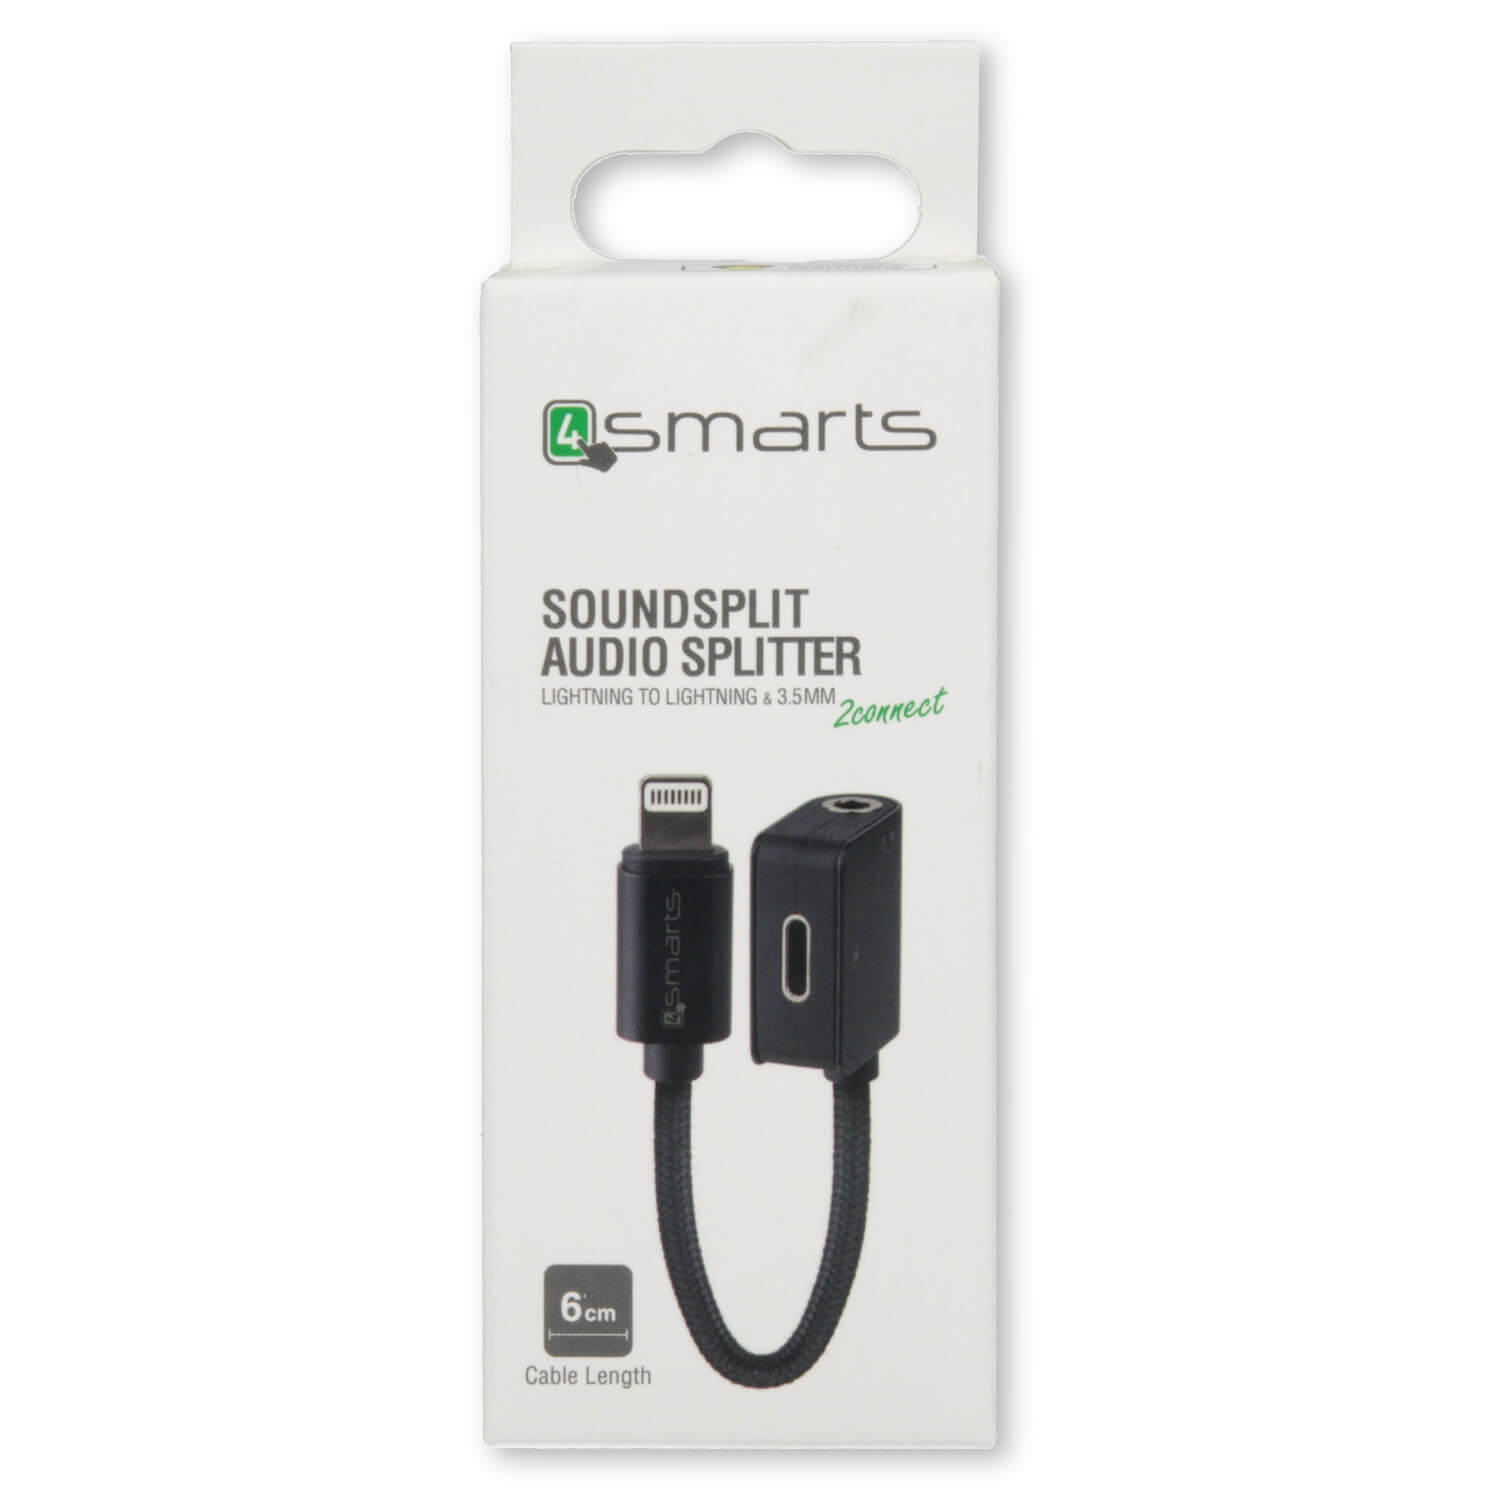 4smarts 4smarts Lightning to Lightning & 3.5mm Audio Splitter SoundSplit - Lightning адаптер към 3.5 аудио изход и Lightning изход (6см) (черен)